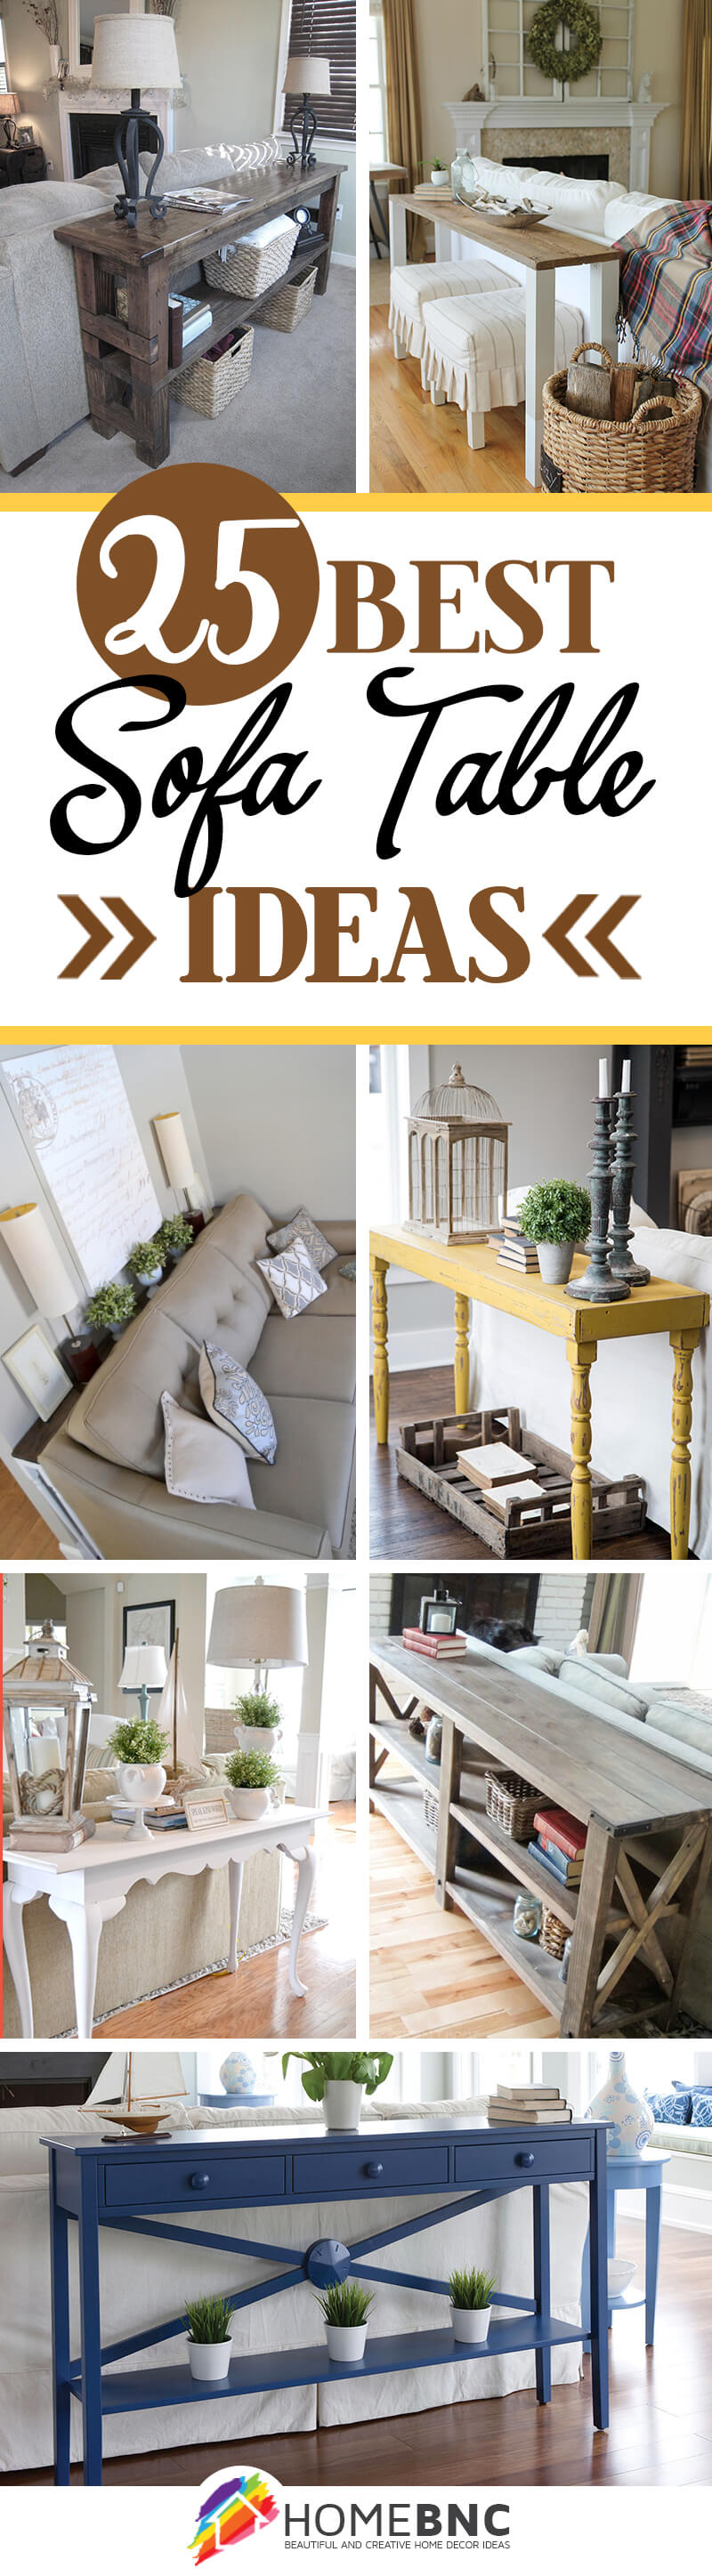 25 Simply Divine Sofa Table Ideas